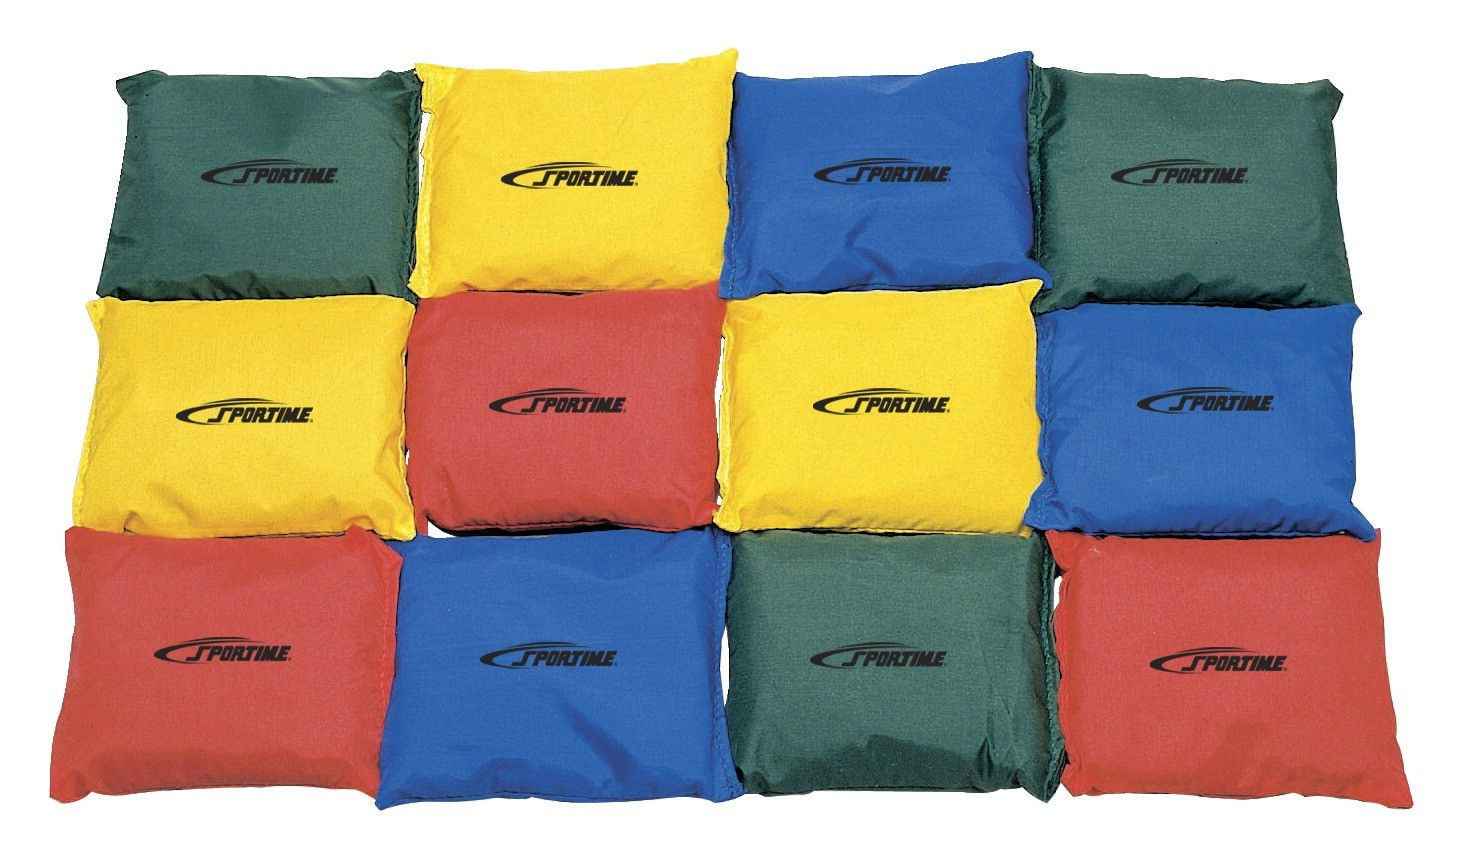 4 Inch Bean Bags, Assorted Colors - 12/Set - 1004608